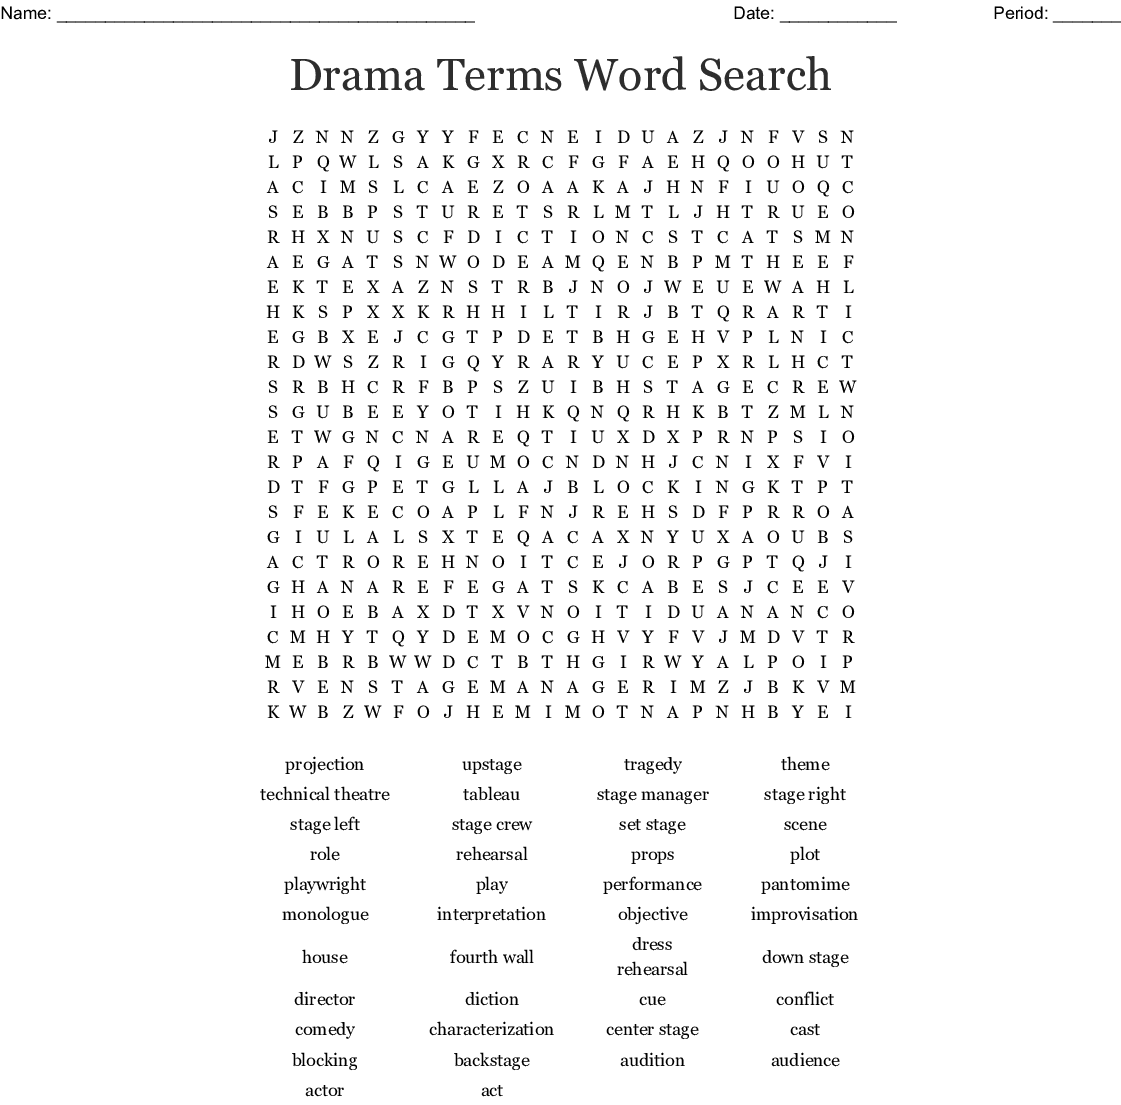 Drama Terms Word Search